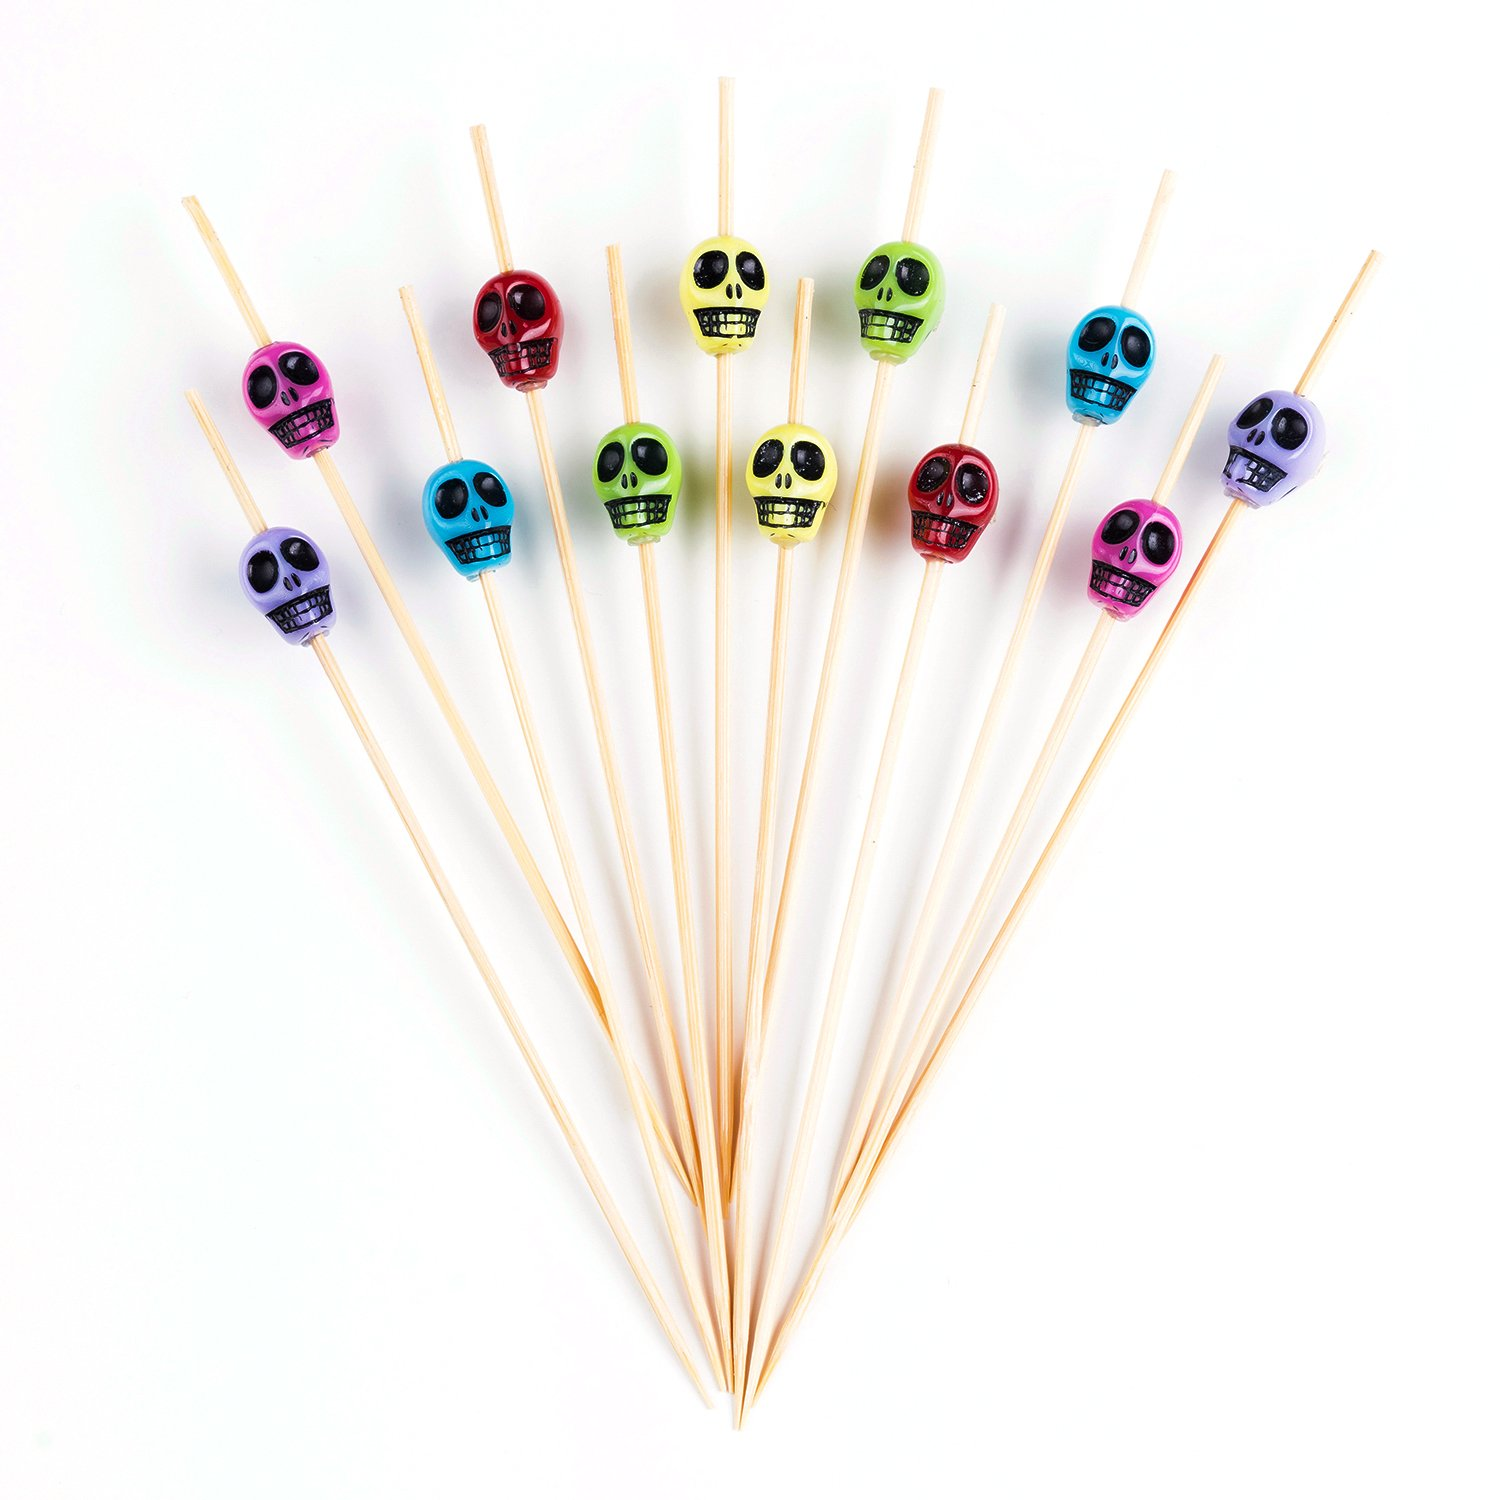 PuTwo Cocktail Toothpicks 100 Counts Cocktail Picks Handmade Natural Bamboo Cocktail Sticks Eco-Friendly Appetizer Skewers for Cocktail Appetizers Fruits Dessert Blue Fishes